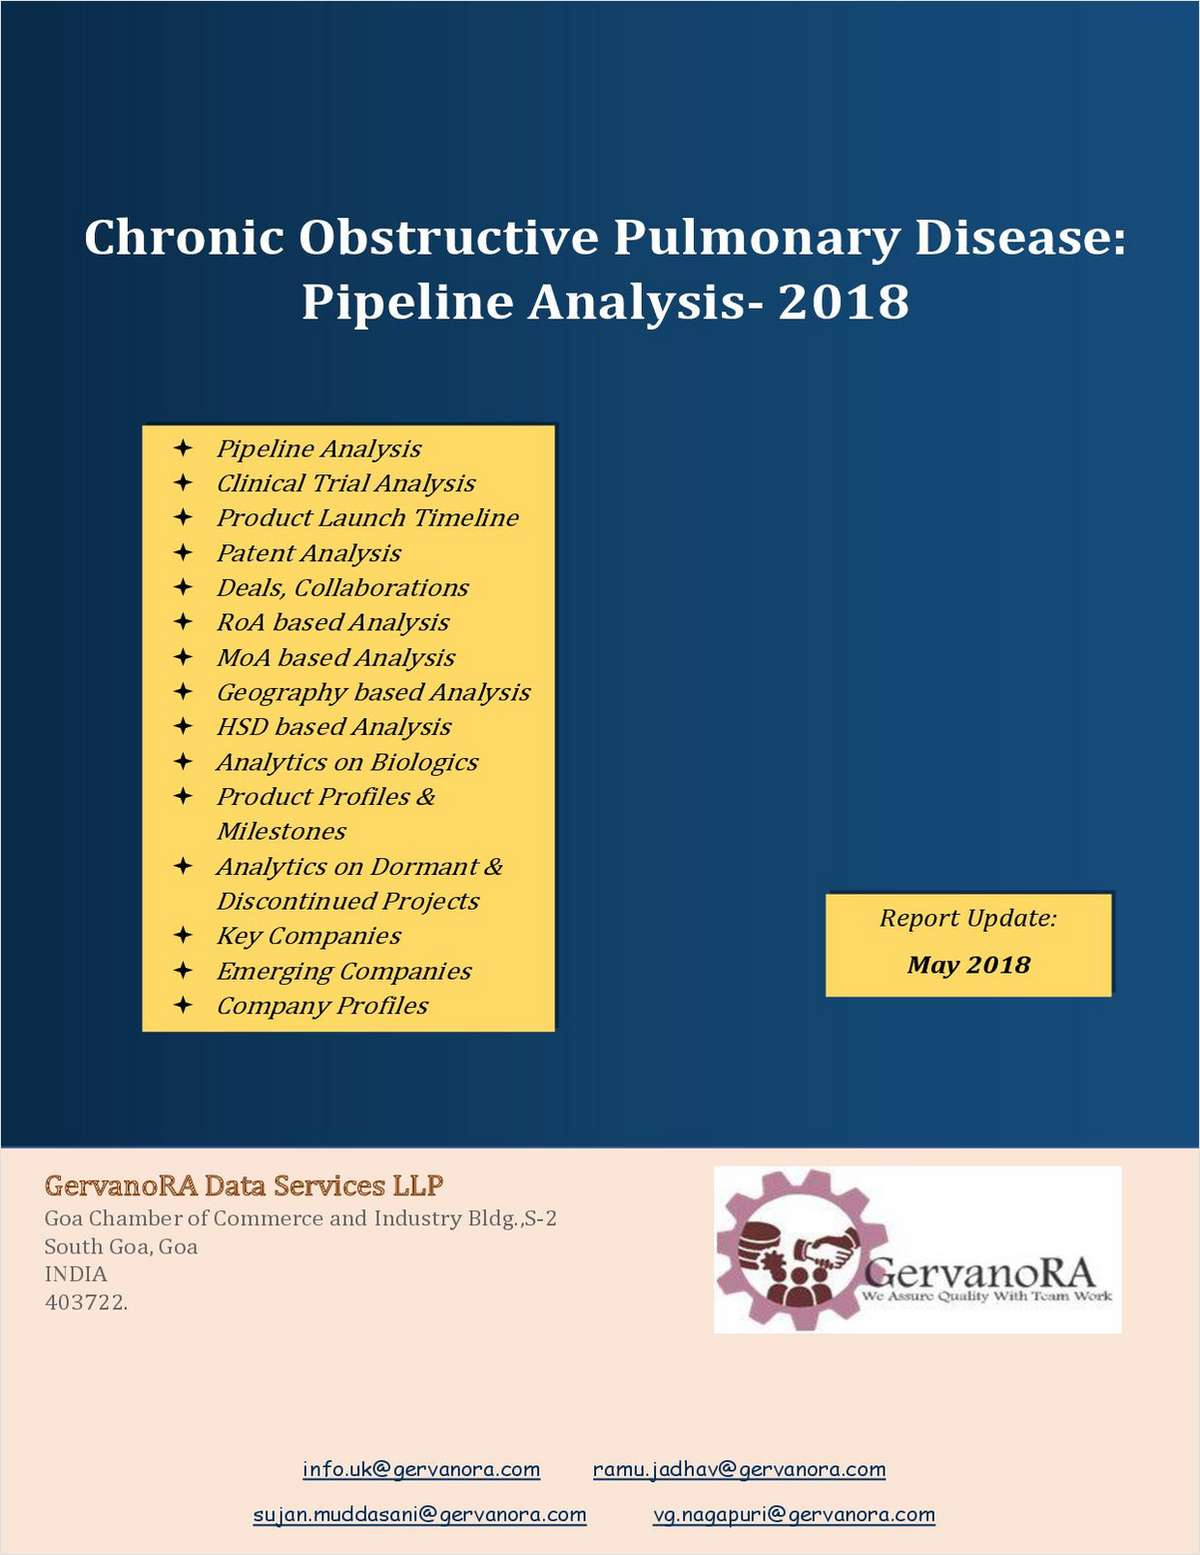 Chronic Obstructive Pulmonary Disease- Pipeline Analysis 2018